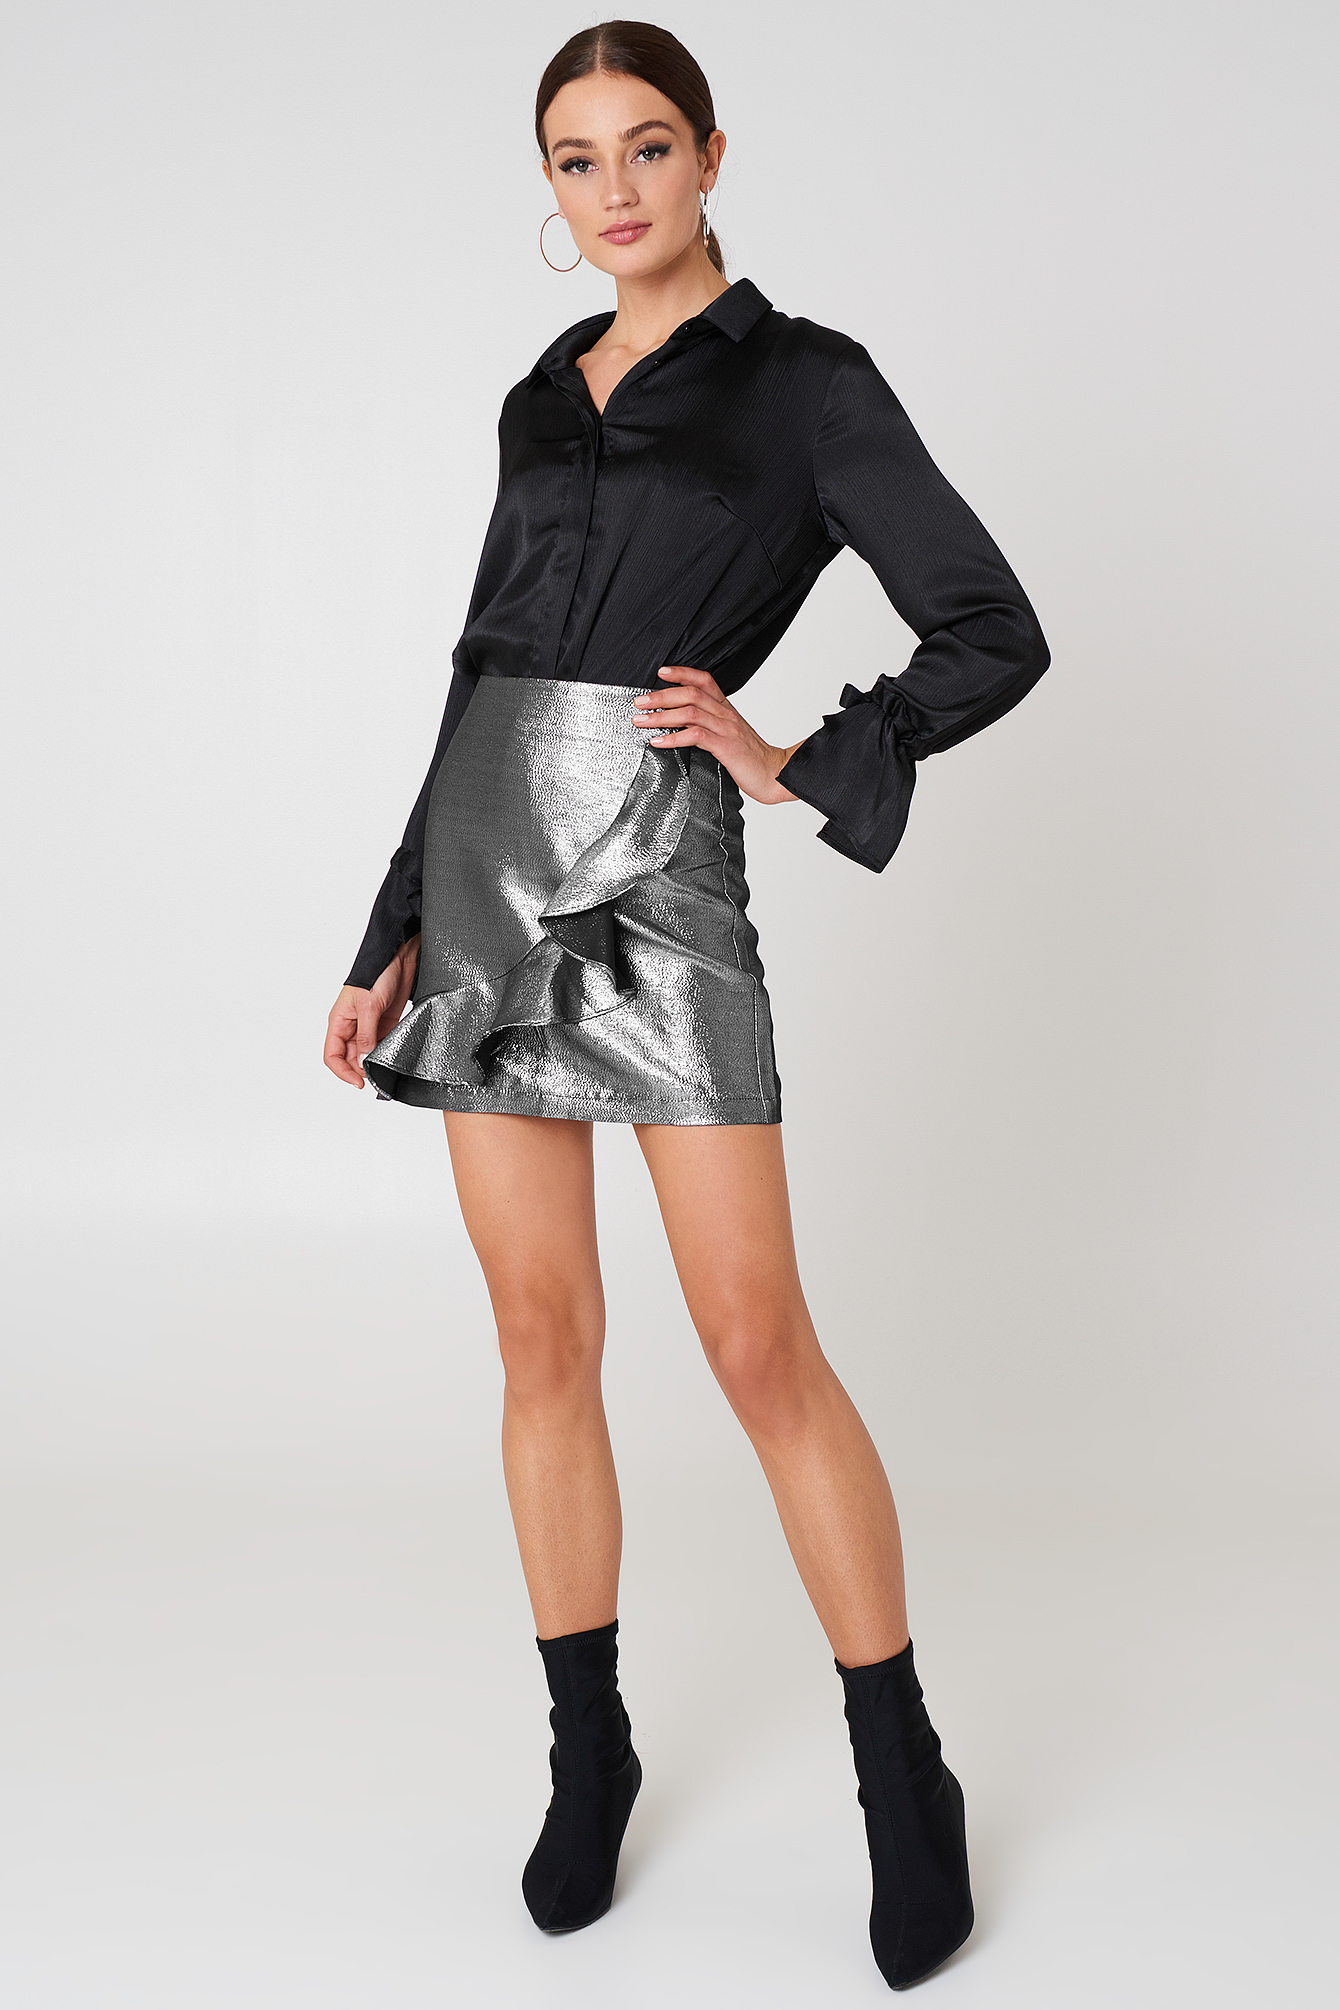 Silver Metallic Frill Skirt